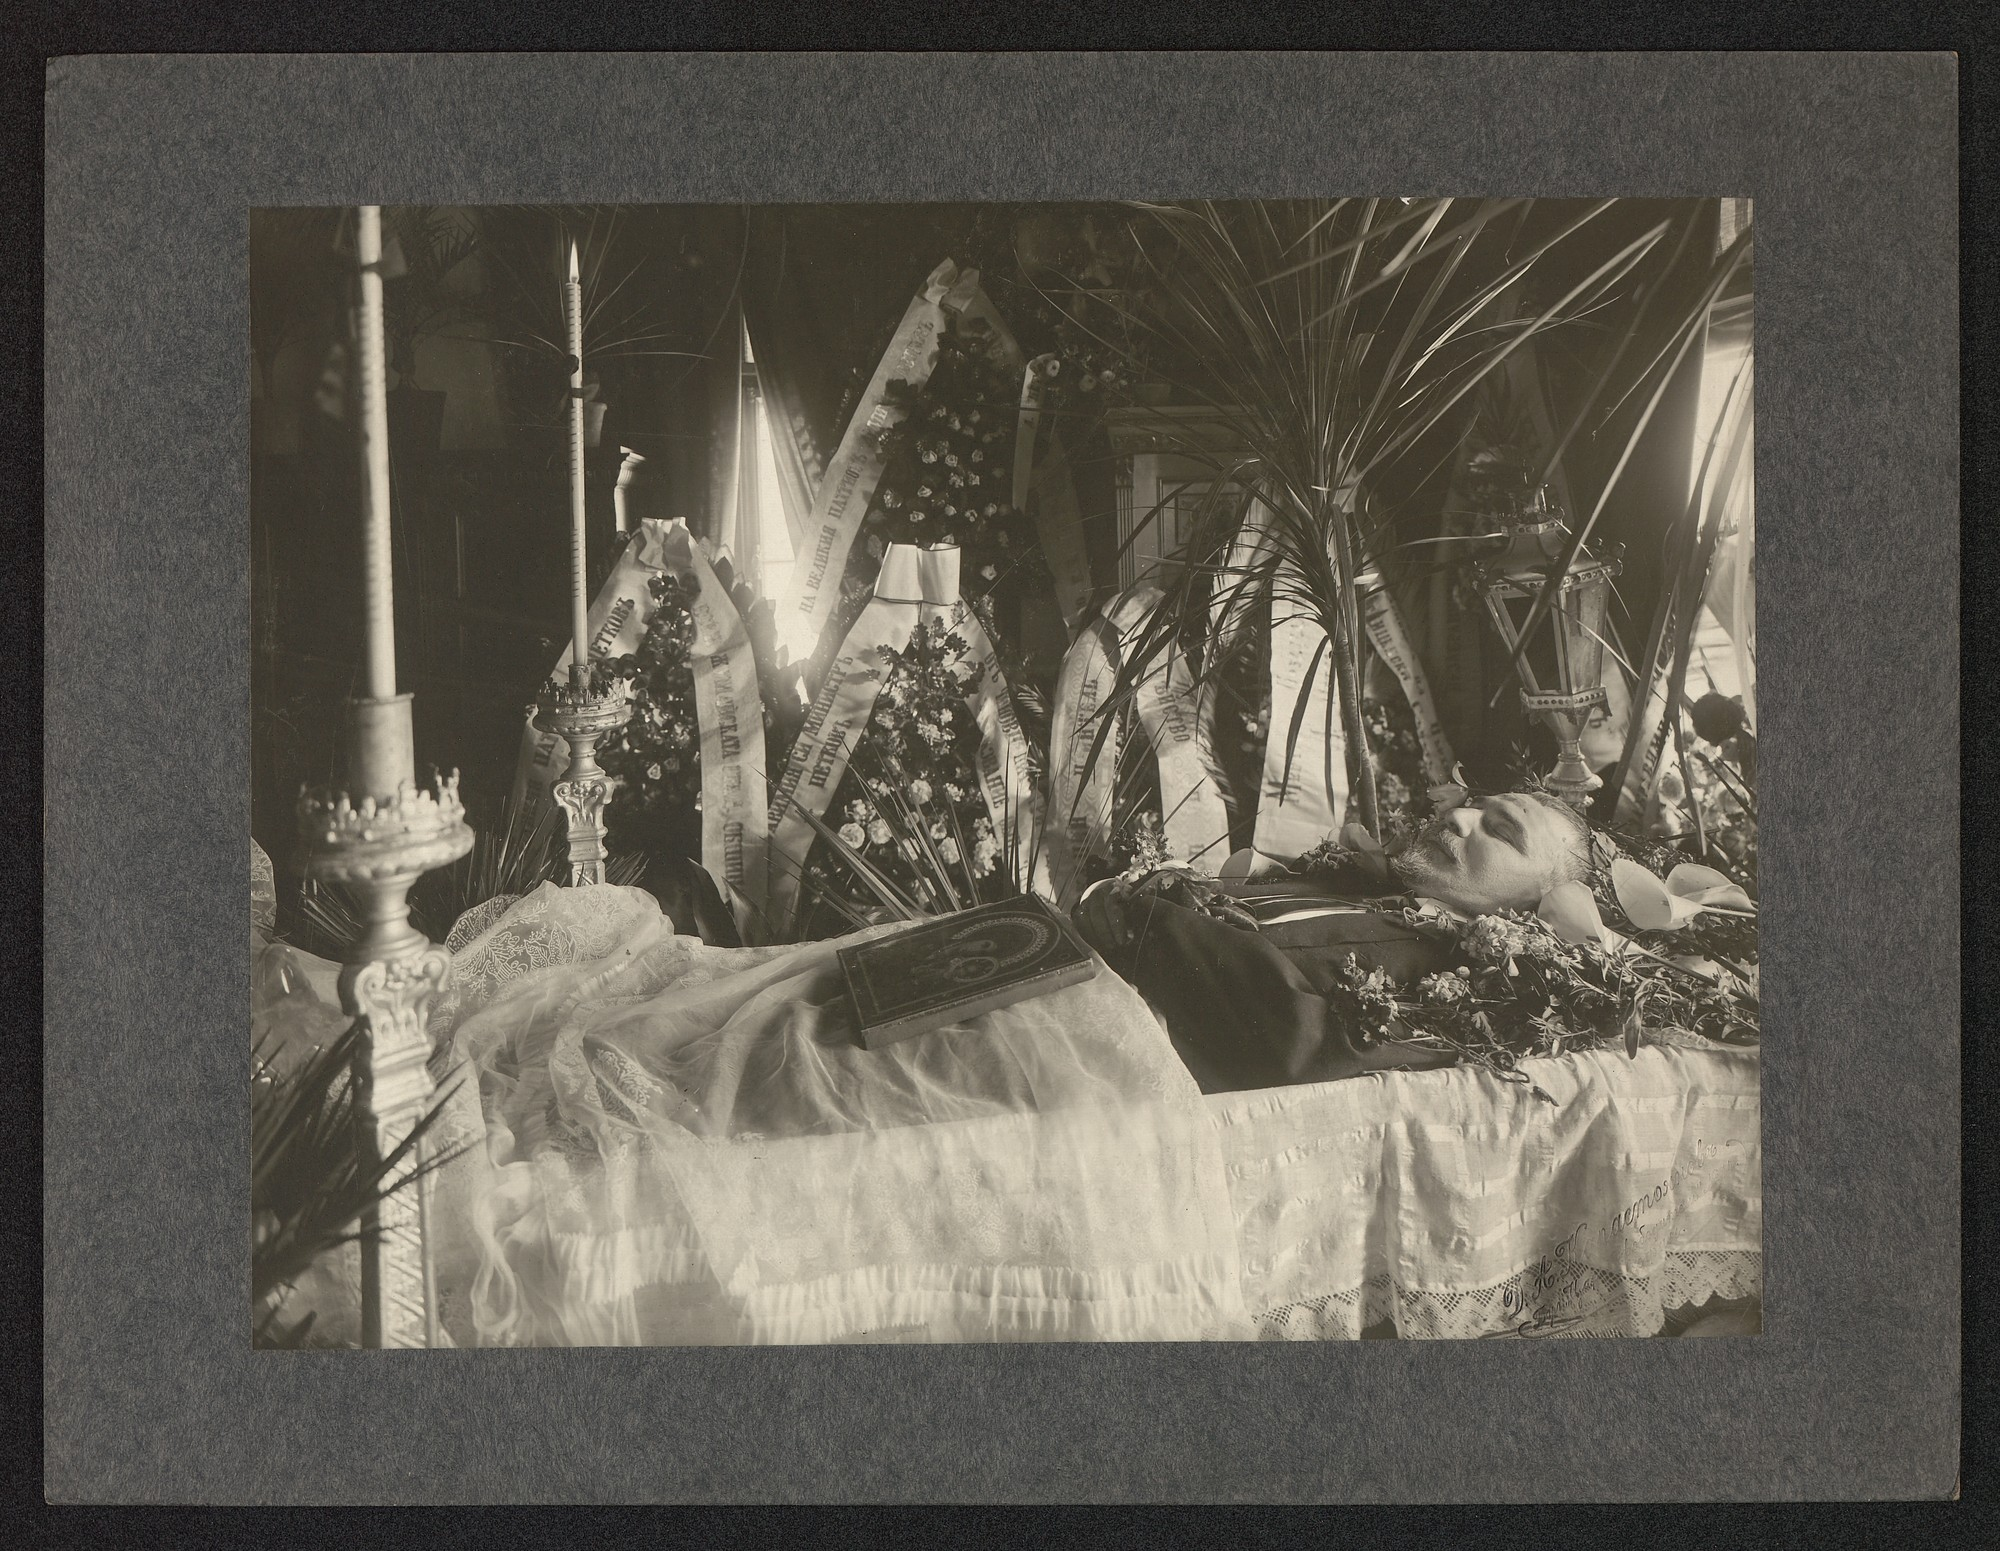 Deathbed of Dimitar Petkov, © St. Cyril and St. Methodius National Library